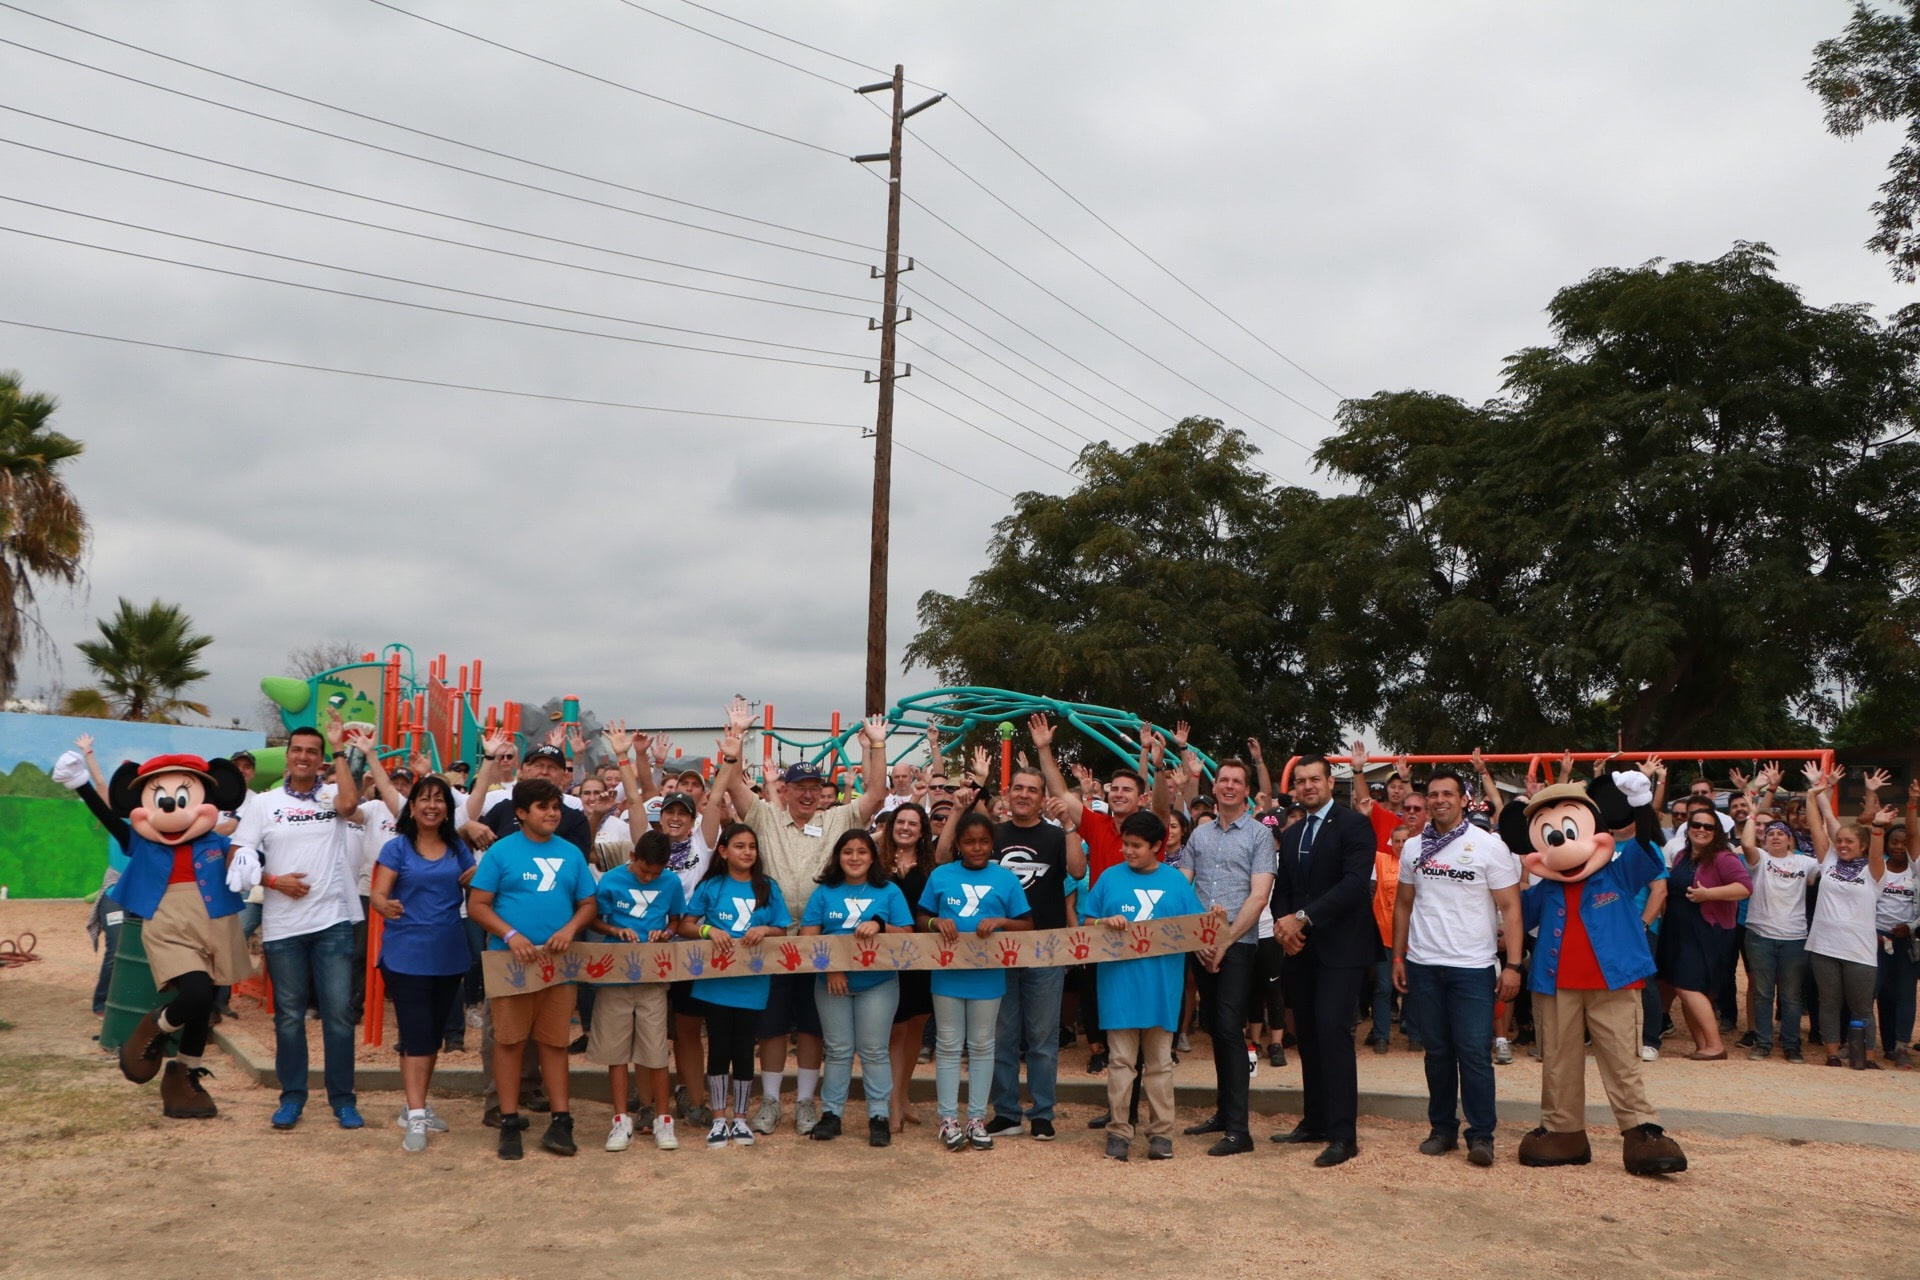 Disney VoluntEARS and Community Complete the 12th KaBOOM! Playground in Anaheim